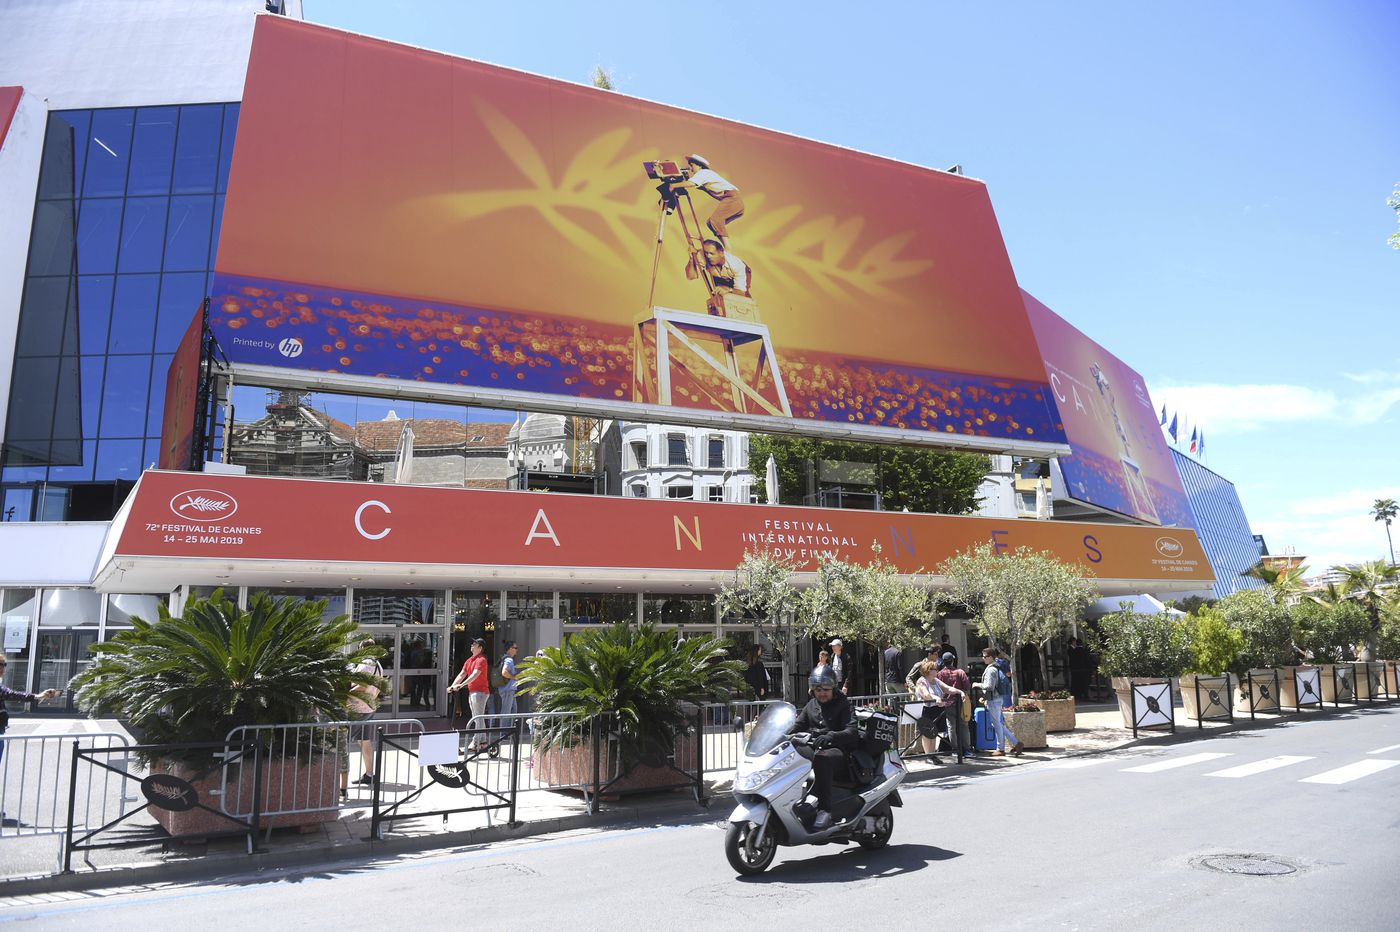 Cannes Film Festival postponed due to coronavirus